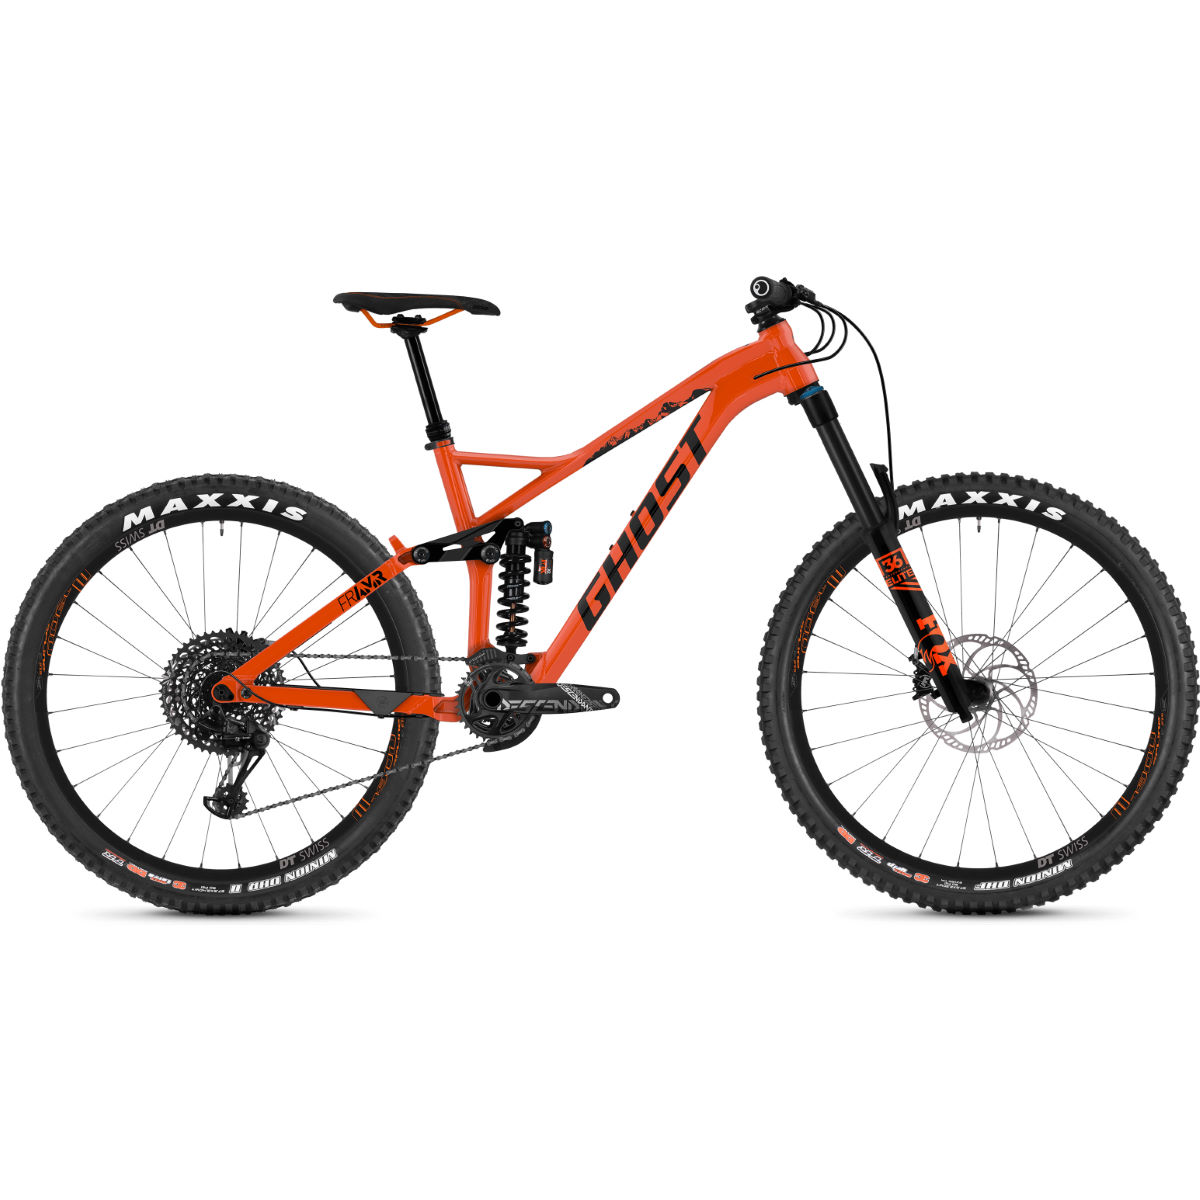 Ghost FR AMR 6.7 (2019) Full Suspension Bike - Bicicletas de MTB de doble suspensión